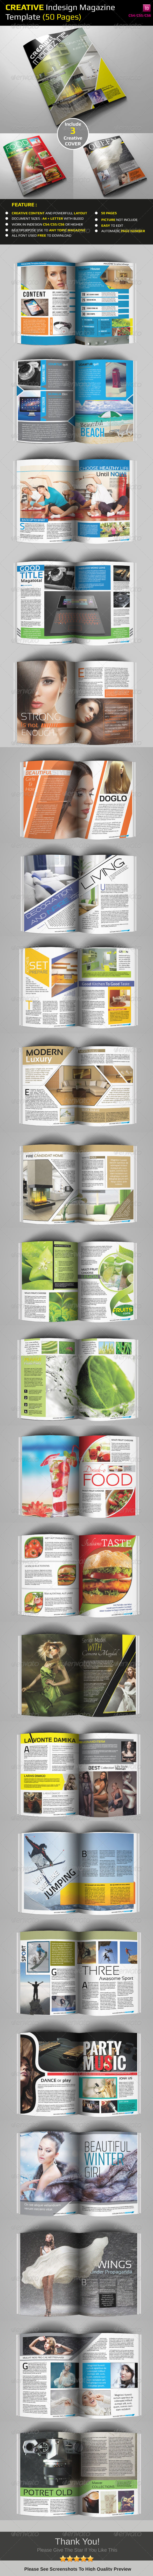 GraphicRiver Creative Indesign Magazine Template 50 Pages 4501163